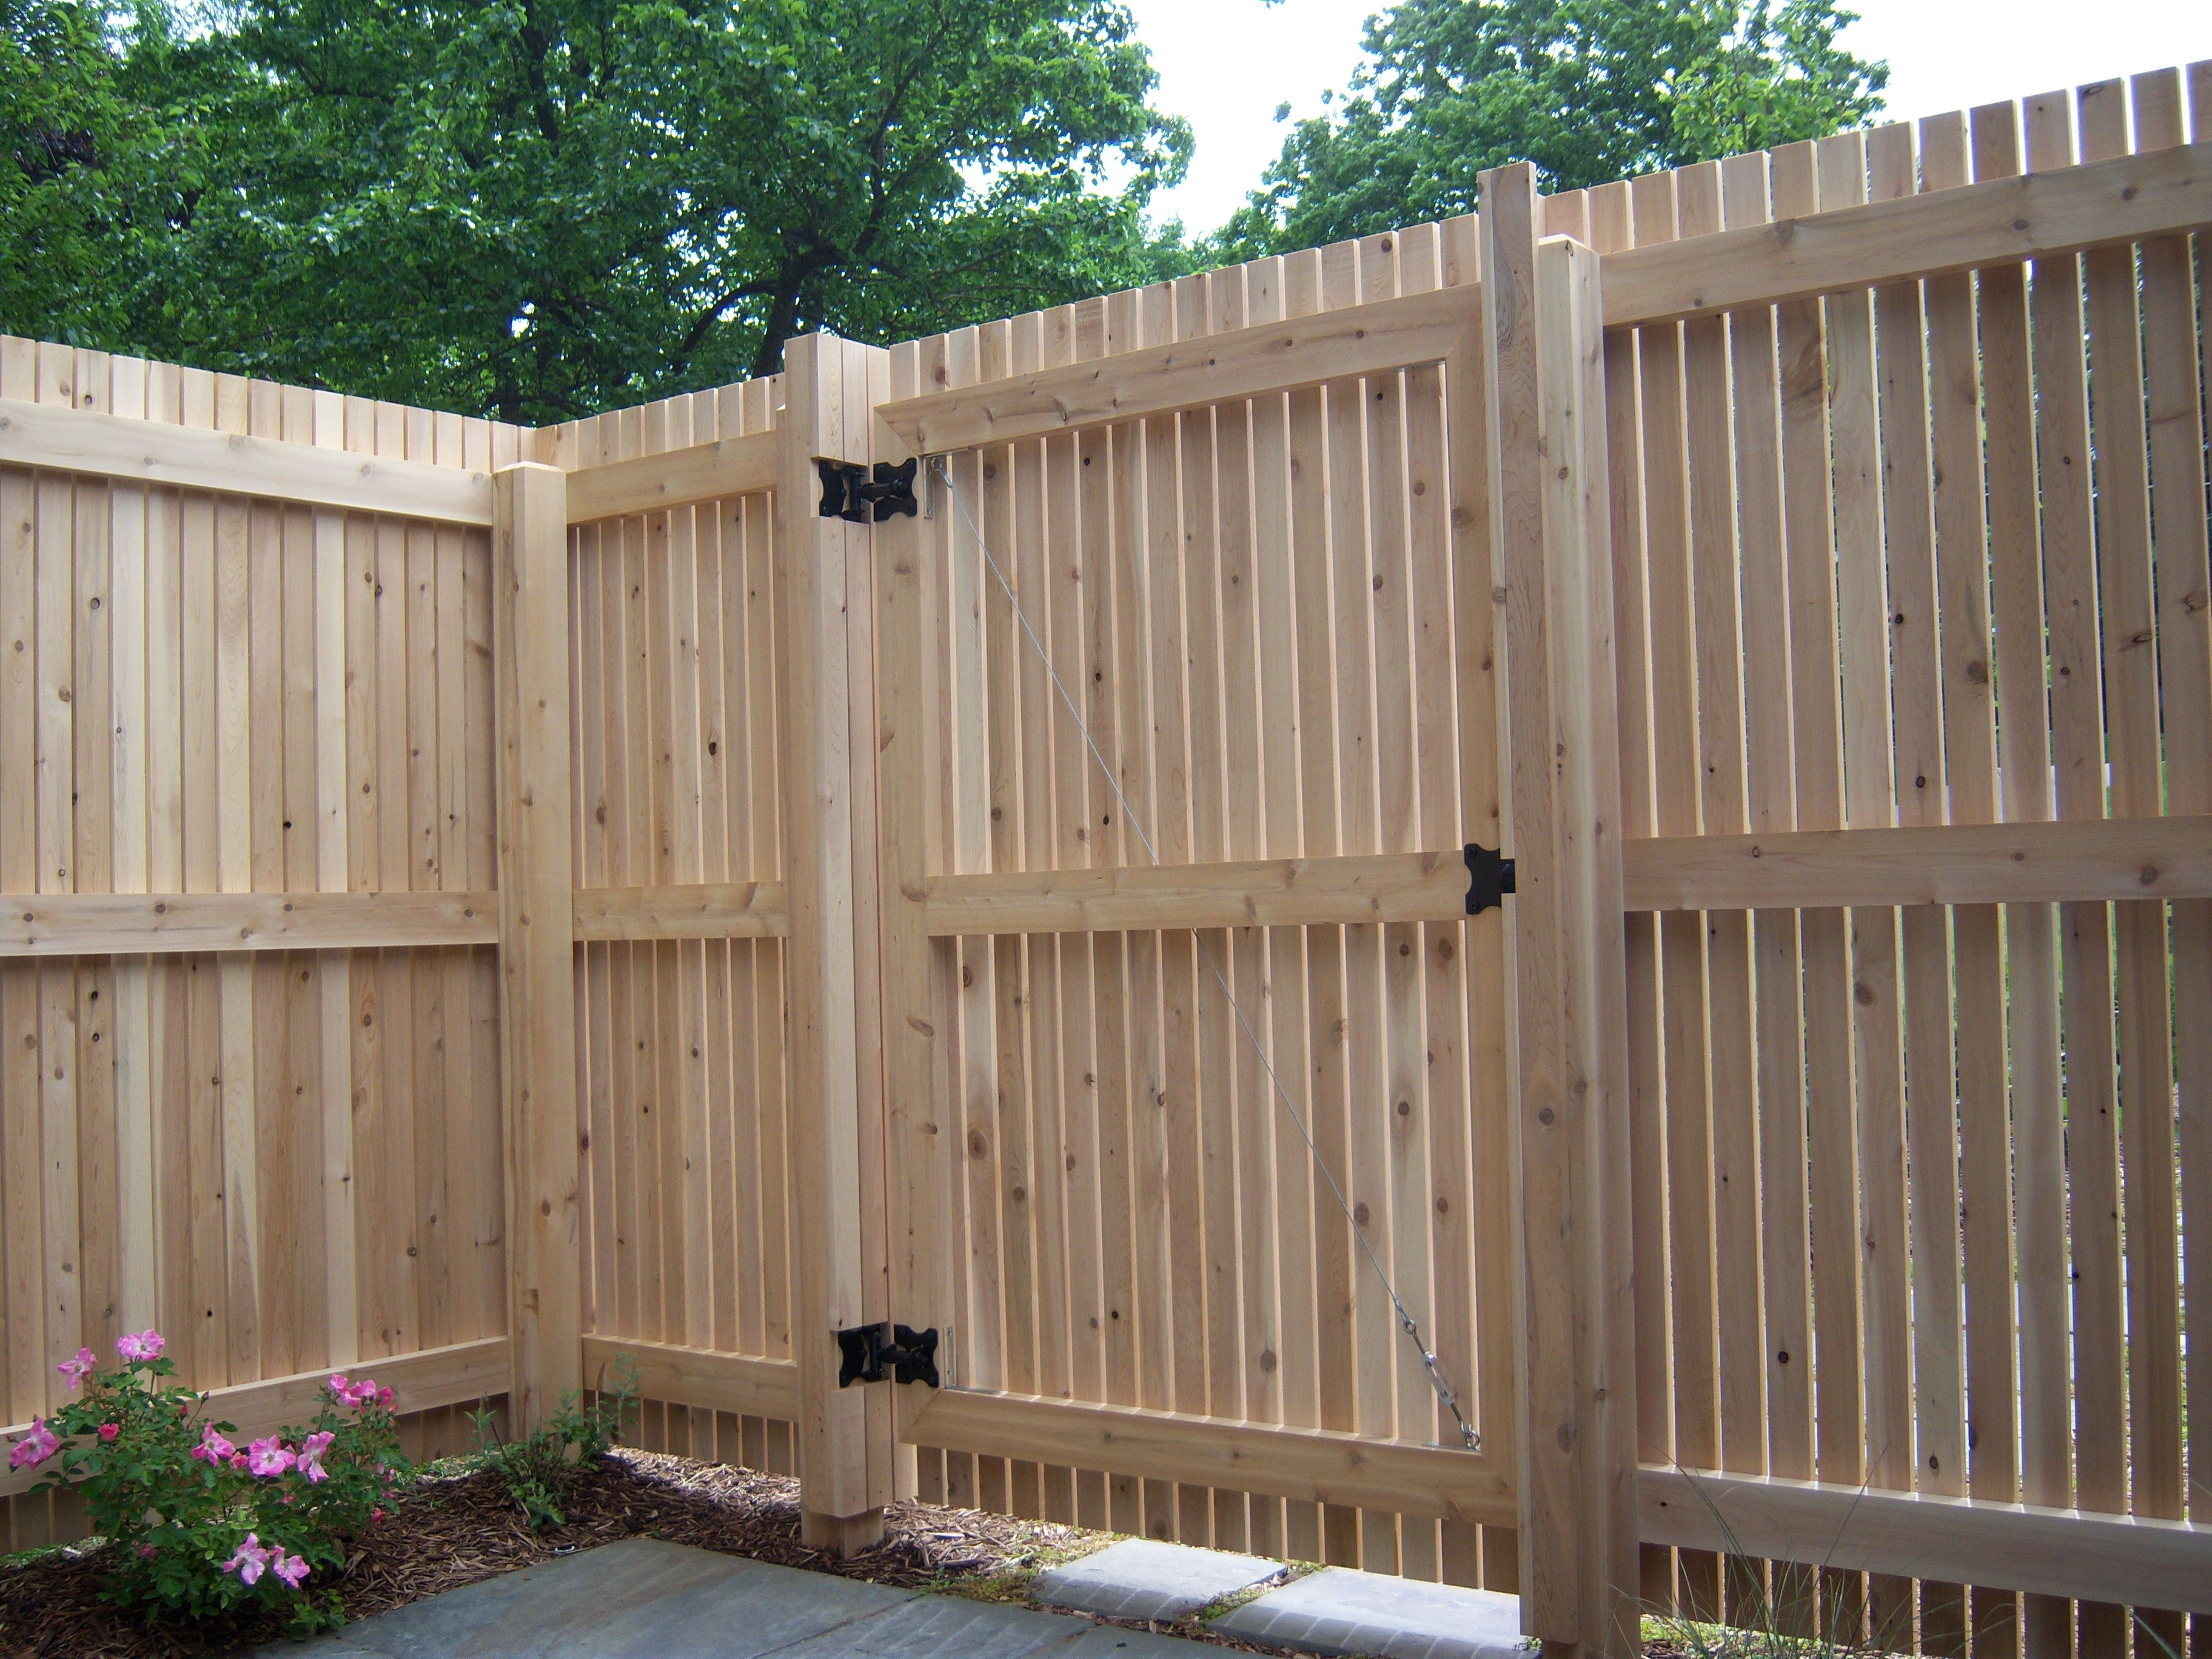 How To Build A Wood Fence Gate Wood Fence Design Fence Gate